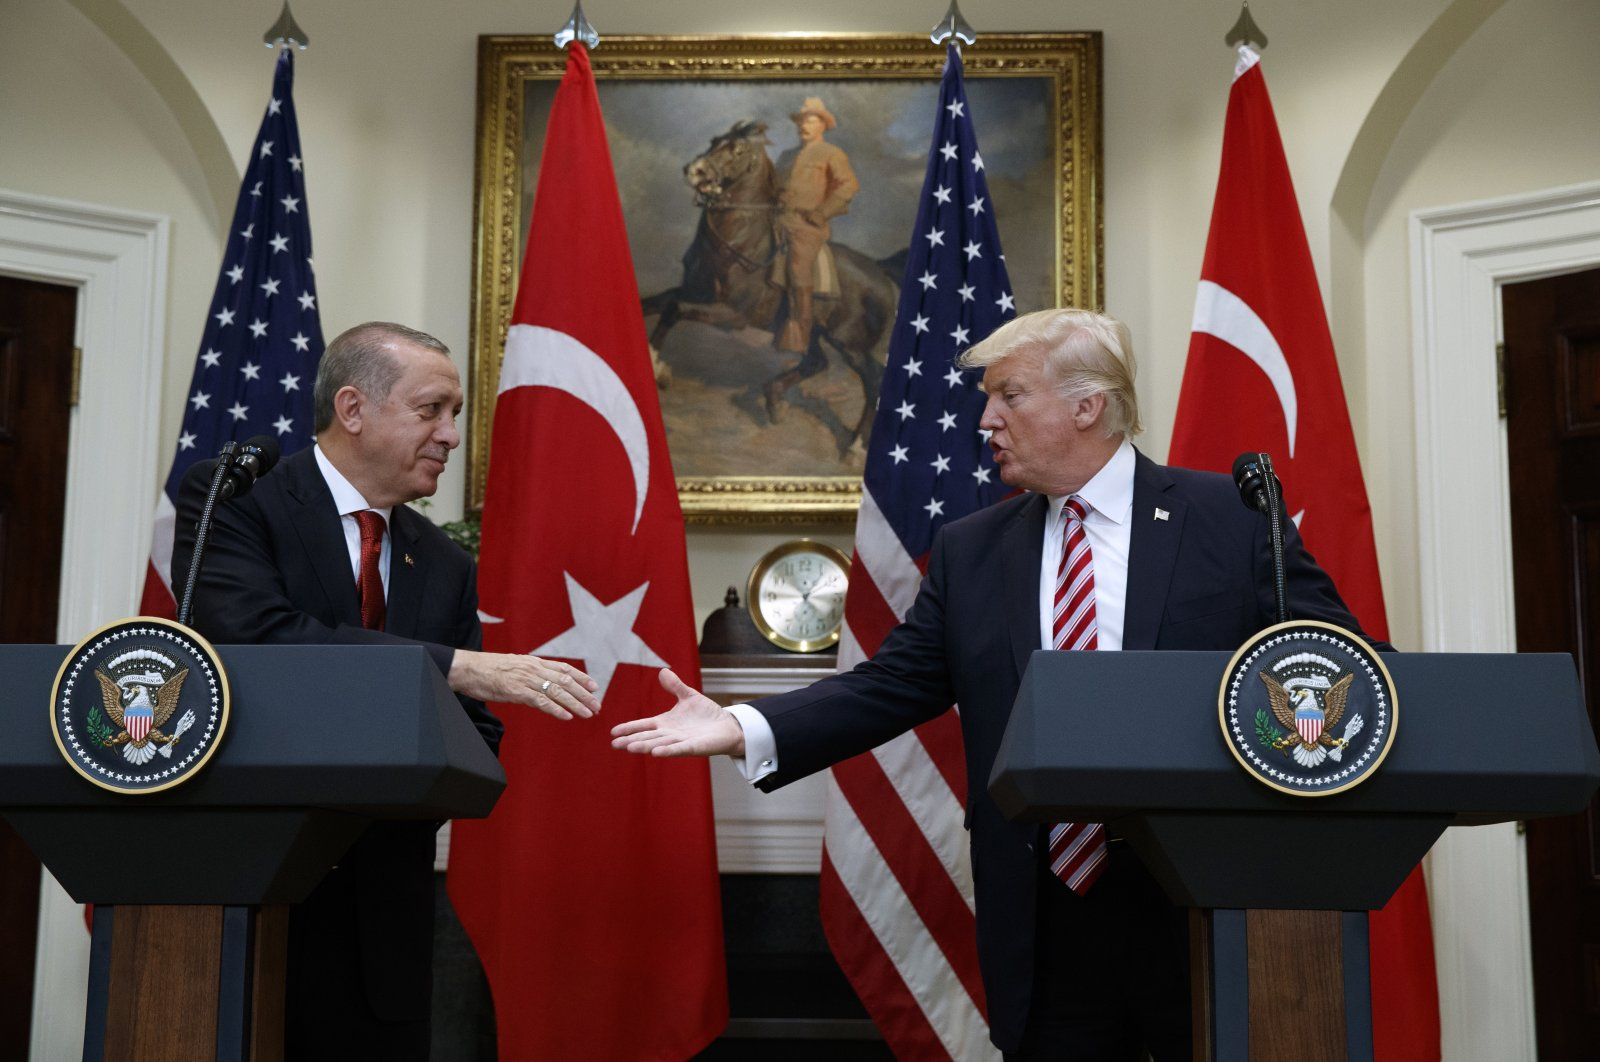 President Recep Tayyip Erdoğan shakes hands with U.S President Donald Trump in the Roosevelt Room of the White House, May 16, 2017, in Washington. (AP Photo)